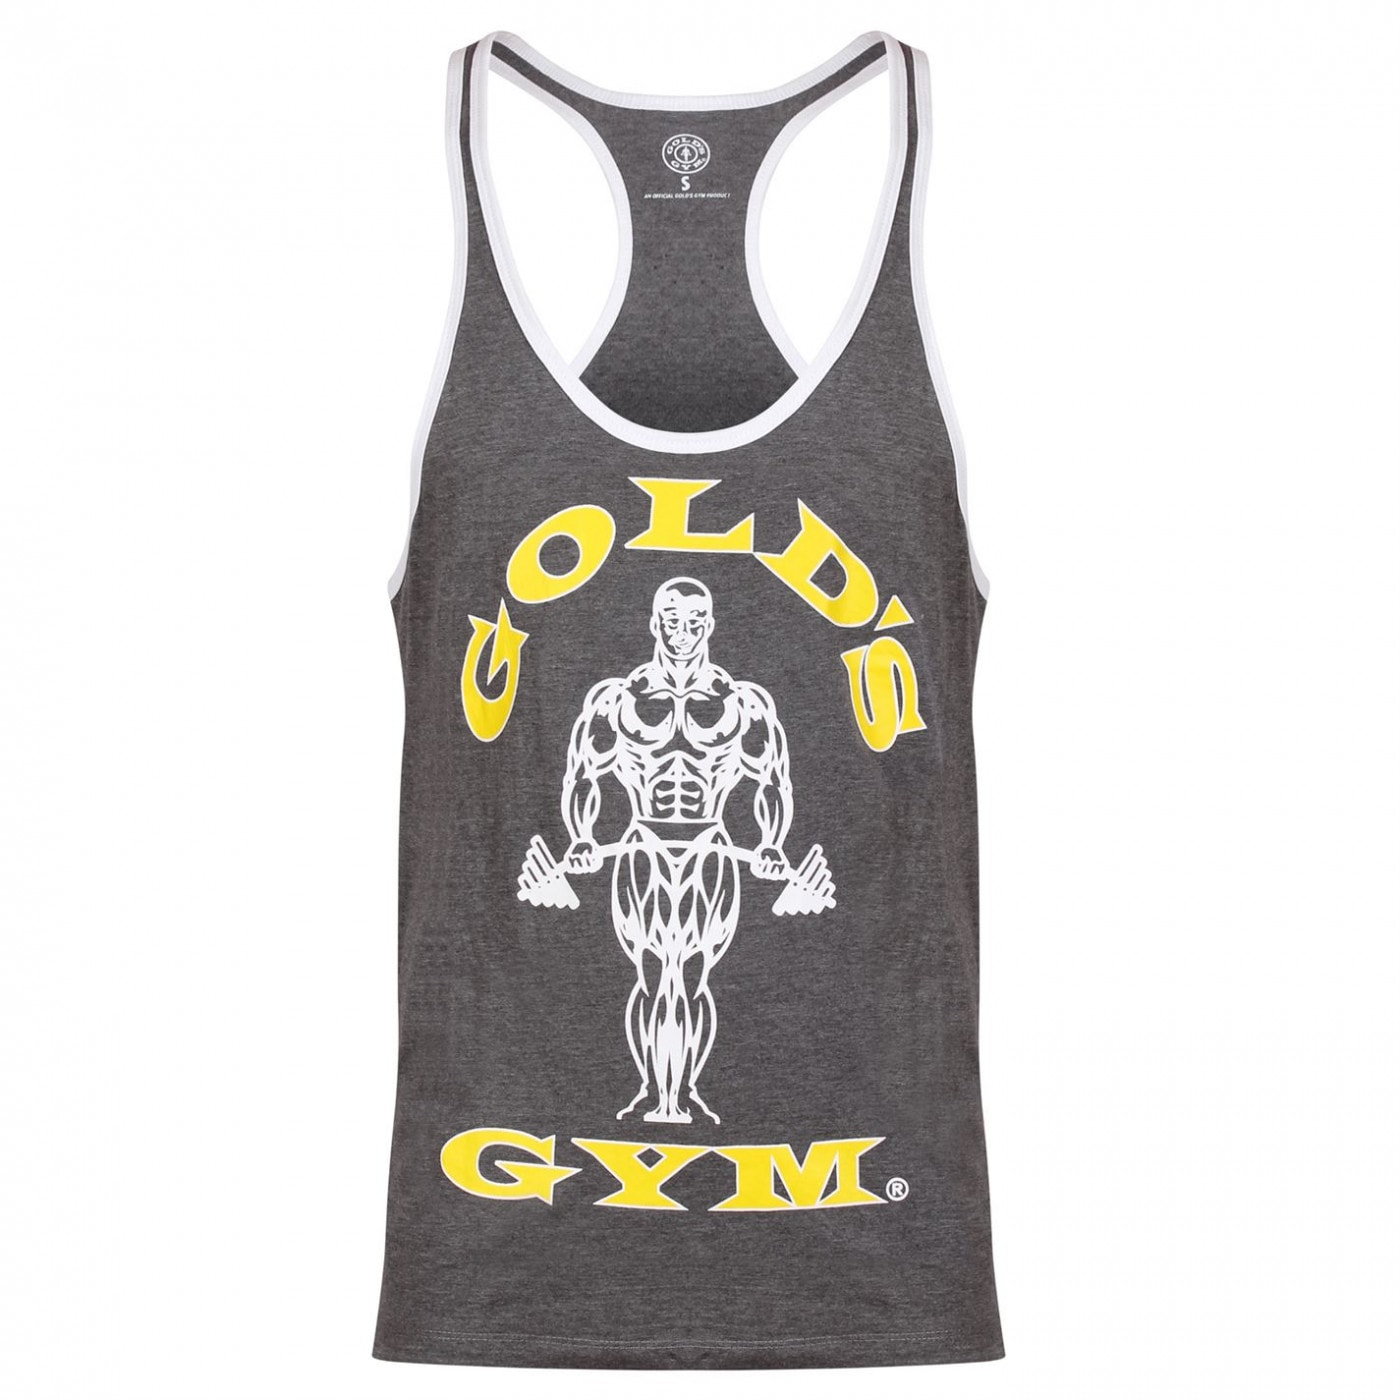 36am golds gym indonesia - HD 1400×1400